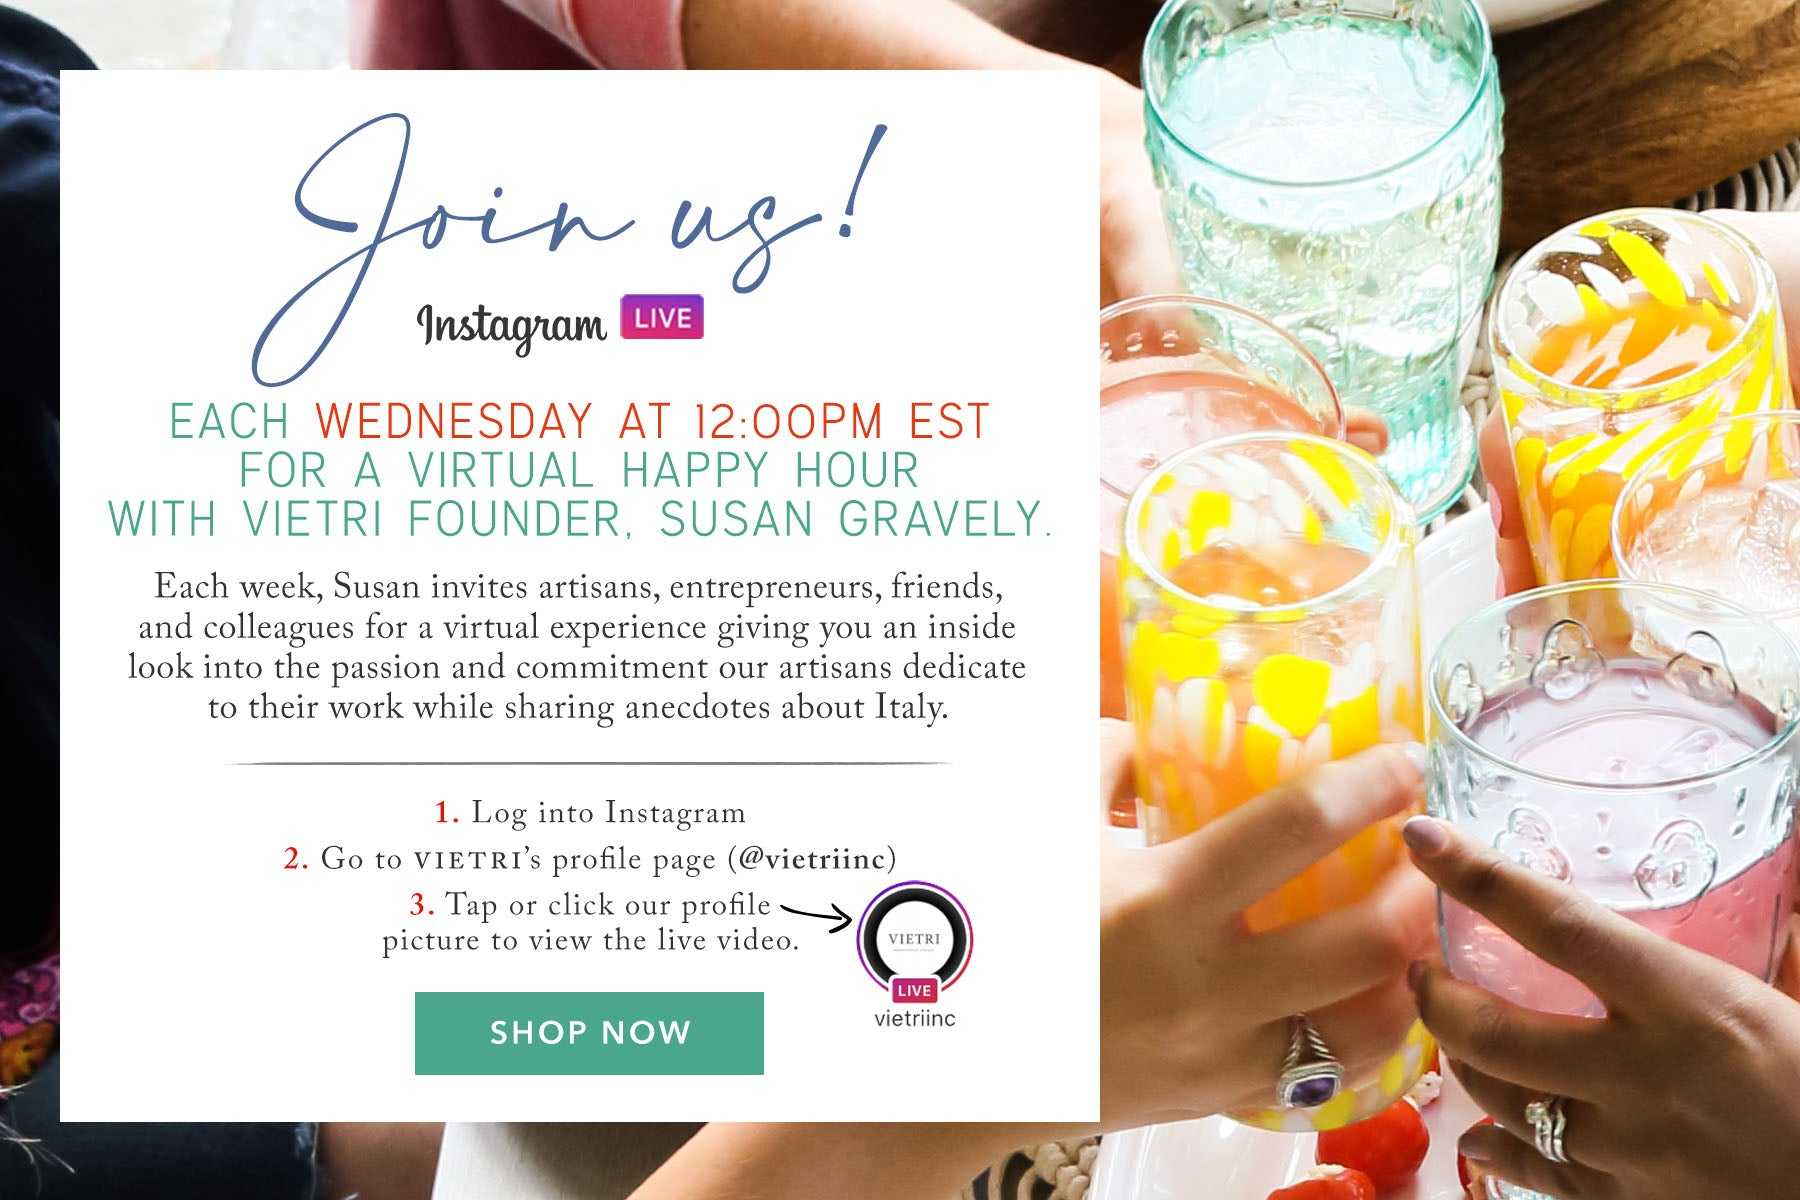 Join us each Wednesday at 12:00PM EST for a Virtual Happy Hour with VIETRI Founder, Susan Gravely.   Each week, Susan invites artisans, entrepreneurs, friends, and colleagues for a virtual experience giving you an inside look into the passion and commitment our artisans dedicate to their work while sharing anecdotes about Italy.   How to connect: @vietriinc live blurb